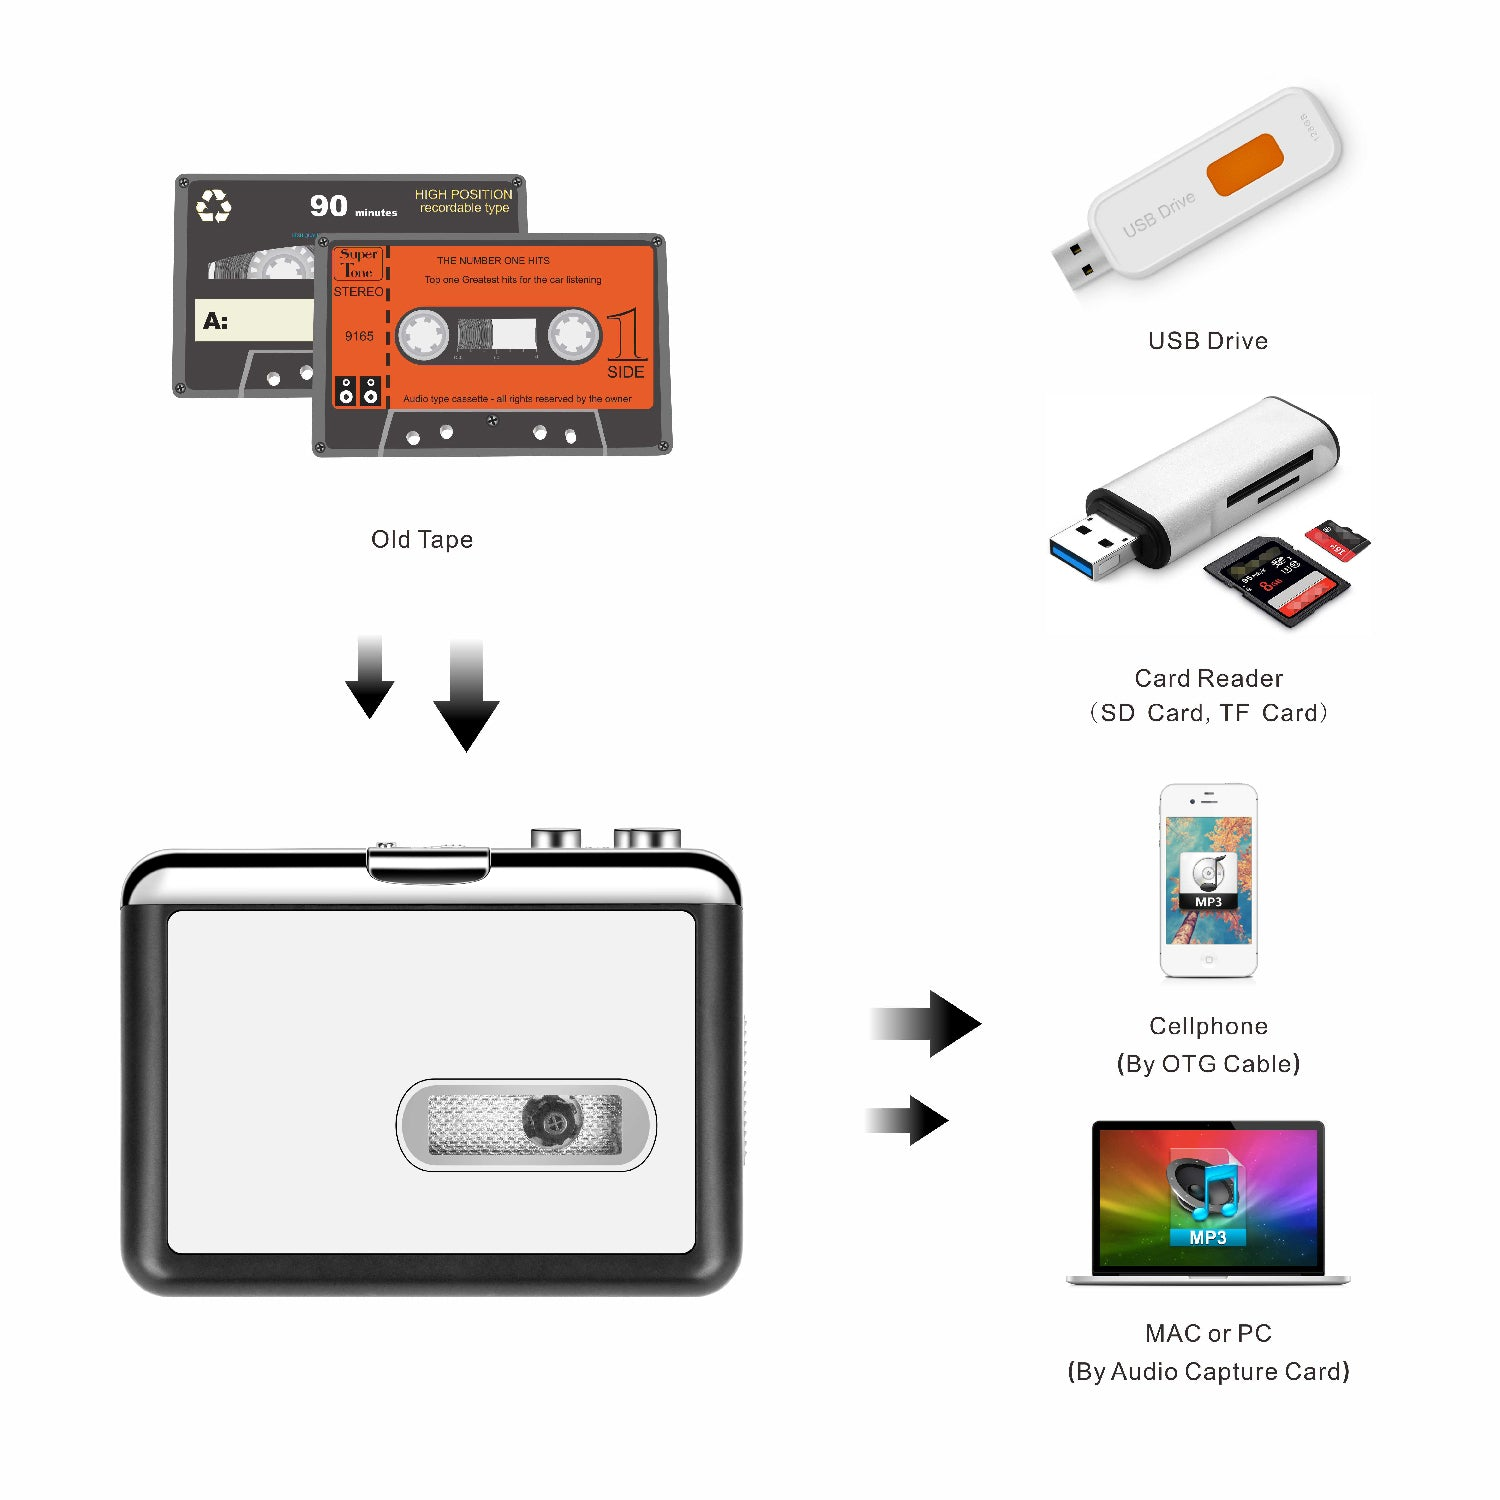 DigitaLife AV205 Portable Cassette Tape Player - Standalone Cassette to MP3 Converter